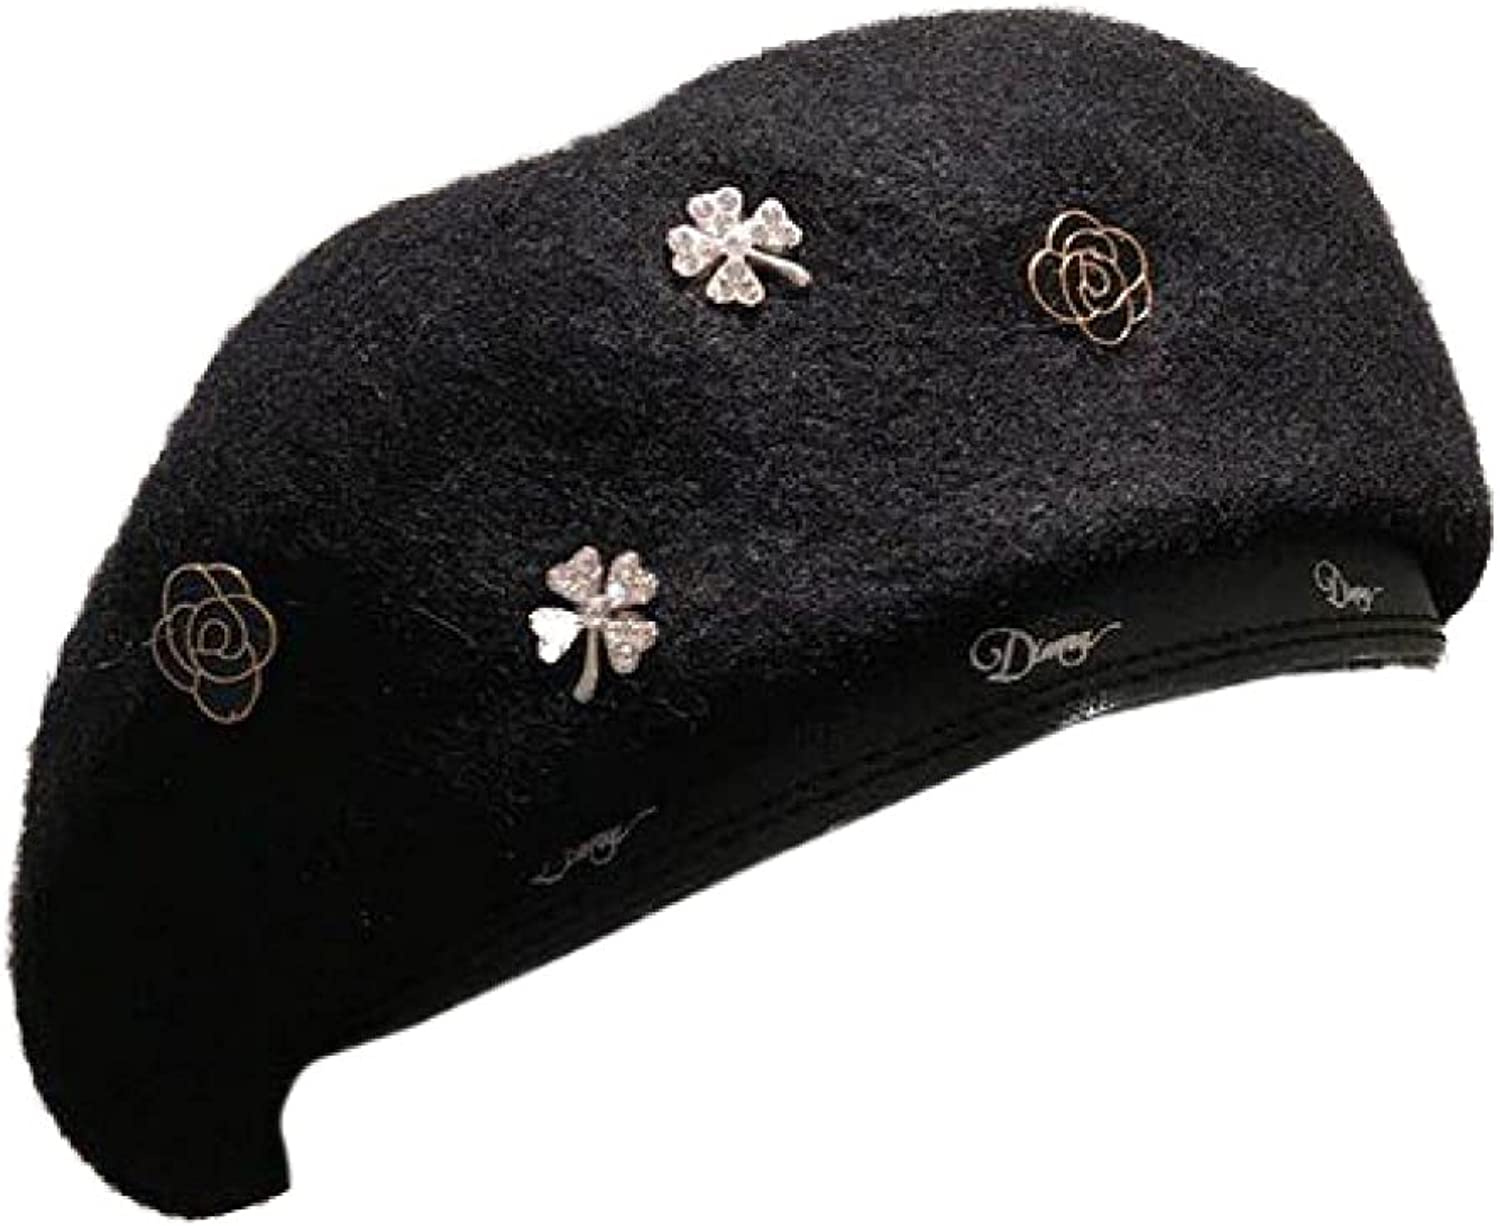 AOBRICON Fashion Berets for Women Camellia Black Female Bonnet Caps Winter All Matched Warm Badge Walking Hat